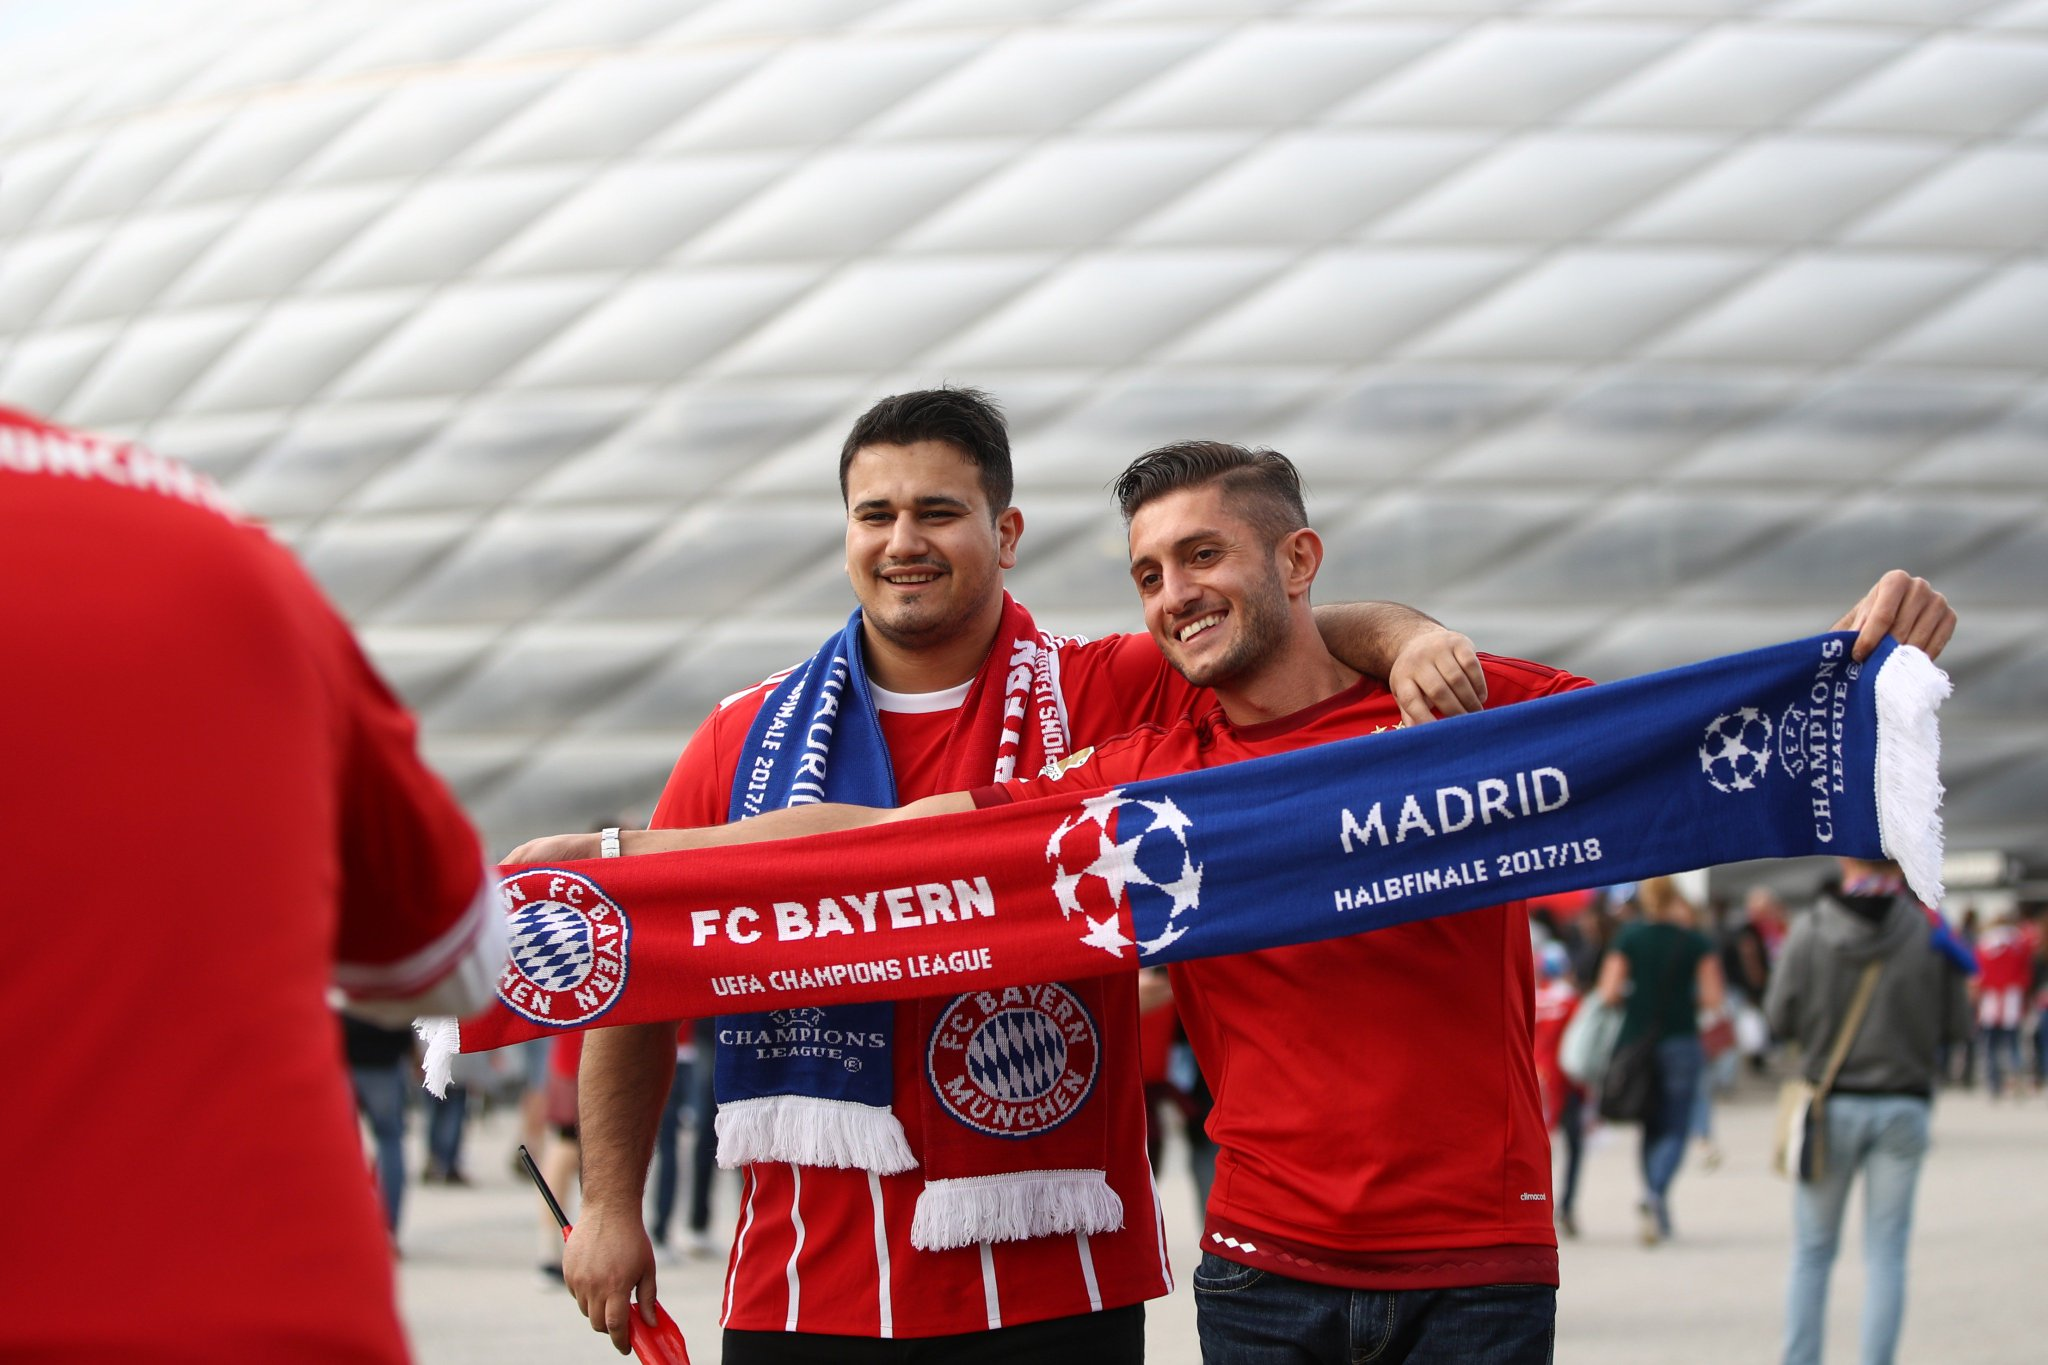 Atmosphere building in Munich. Excited for tonight's first-leg tie? ��  #UCL https://t.co/lWTzaxvHxz